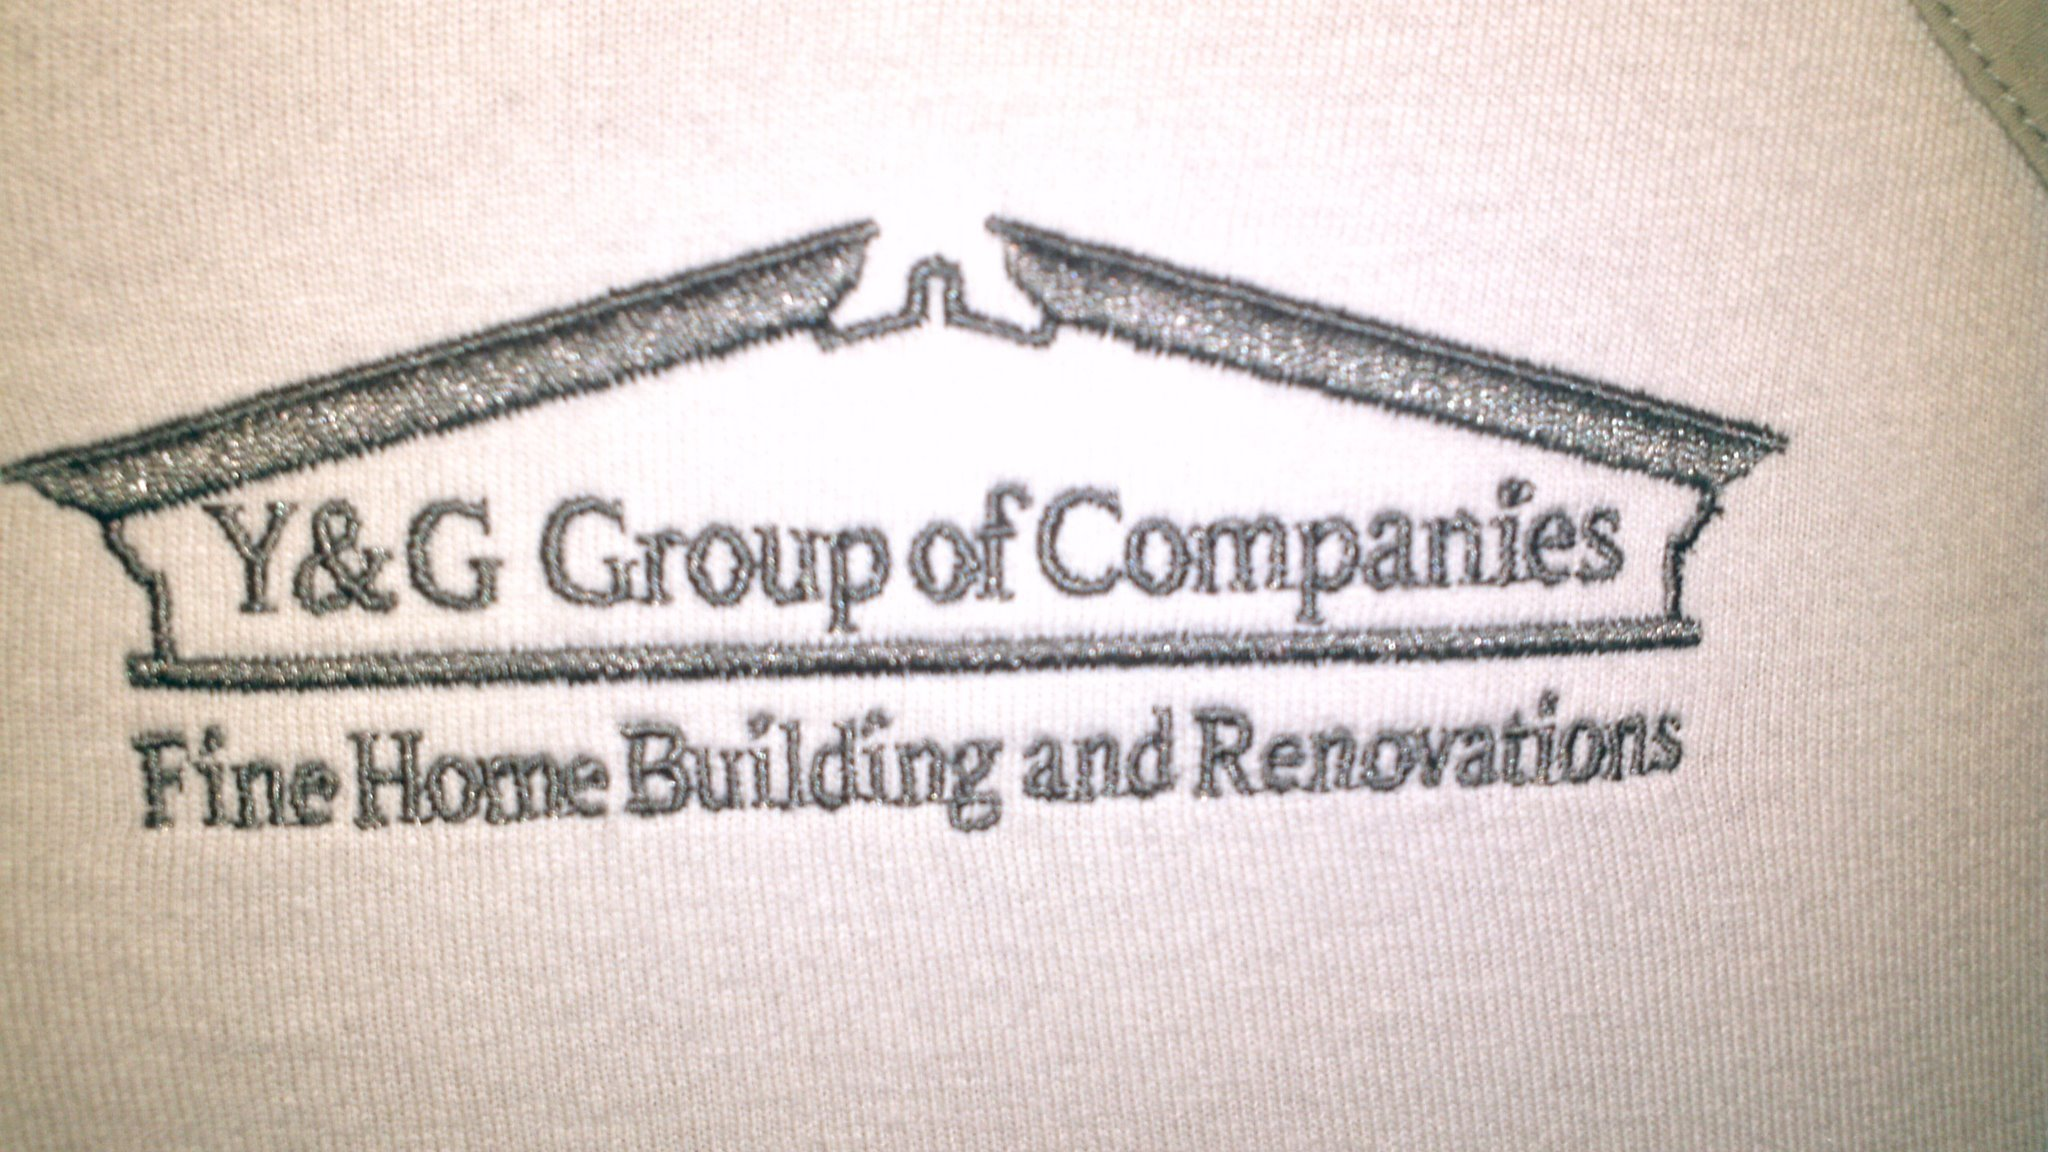 YELLOW & GREEN GROUP OF COMPANIES